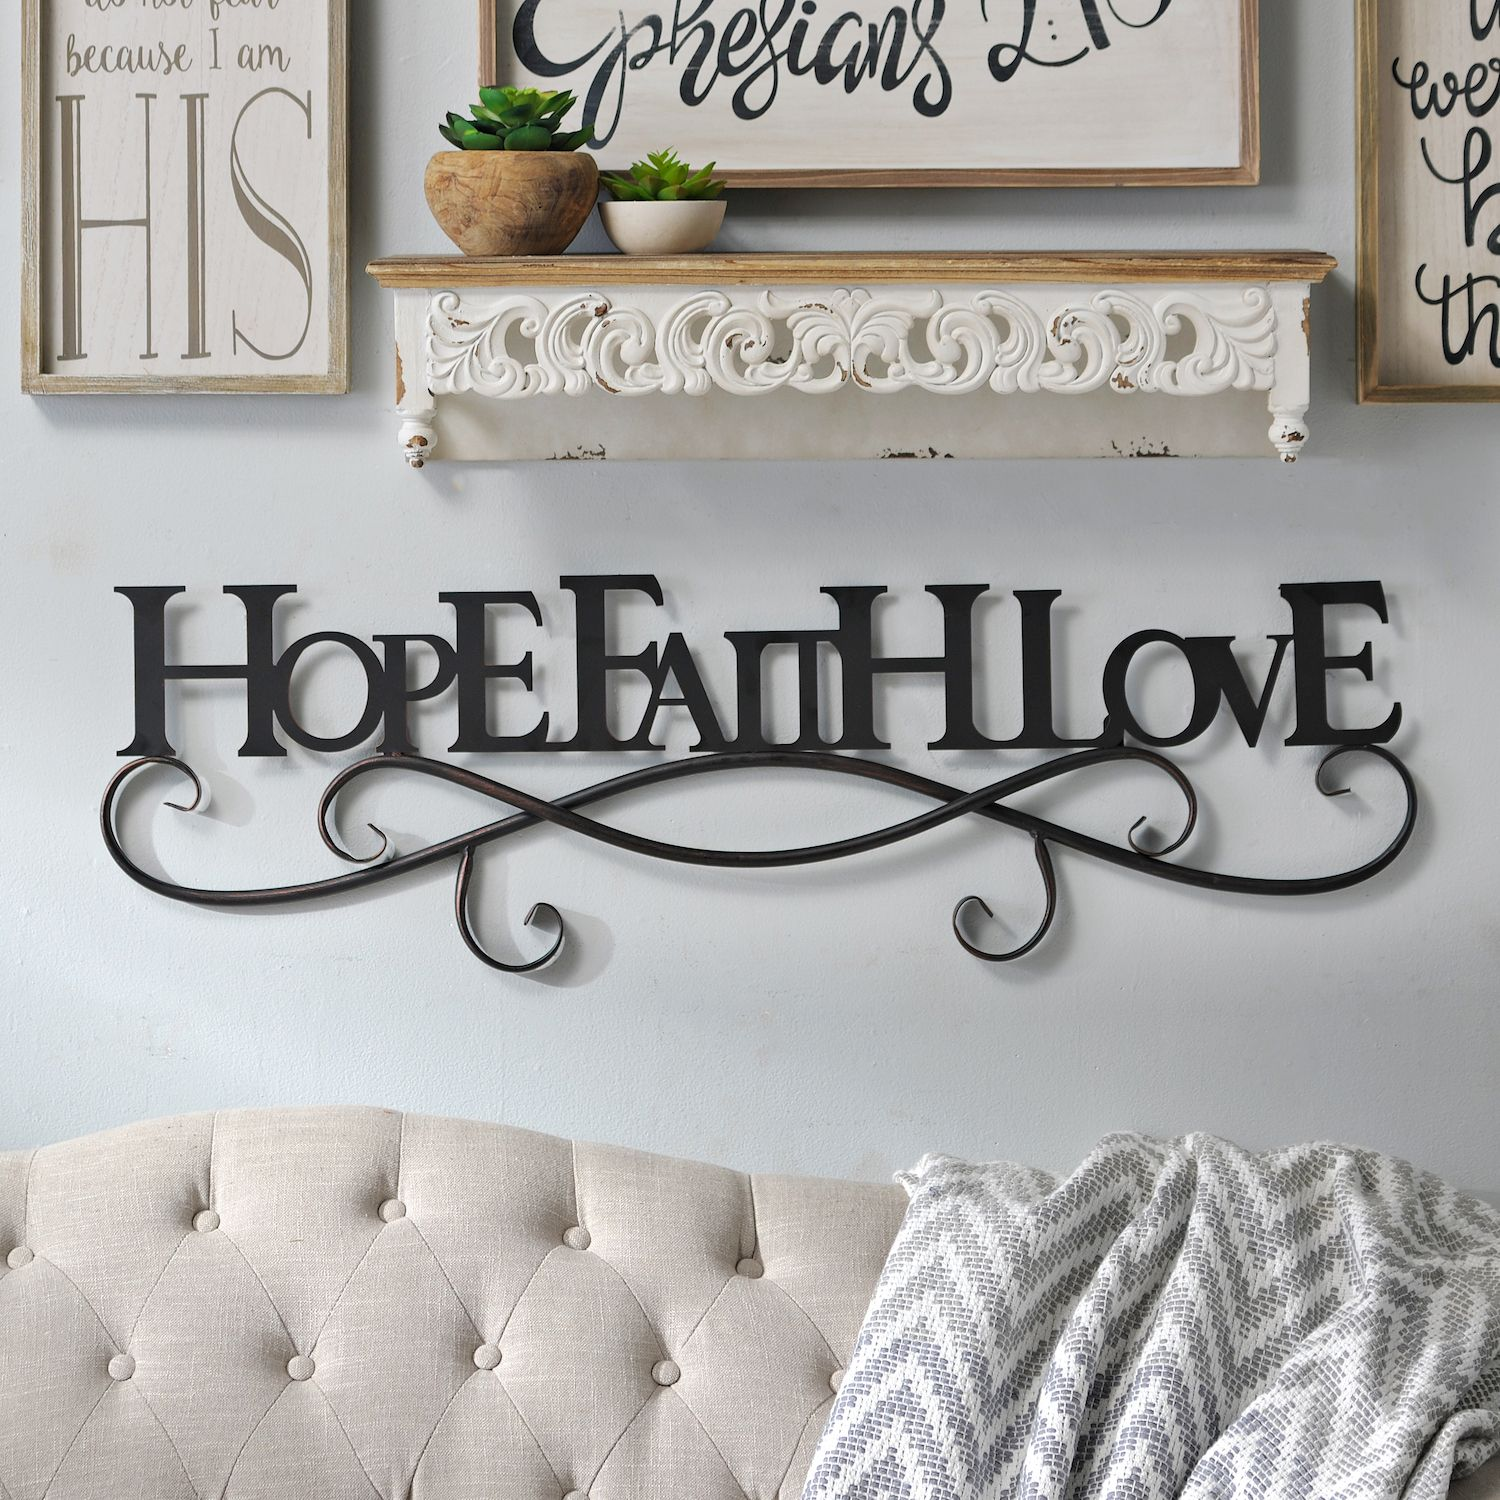 Kick Off The New Year With Words To Live By Black Hope Faith Love Metal Plaque Is Now 19 98 Through 12 31 At Kirkland S